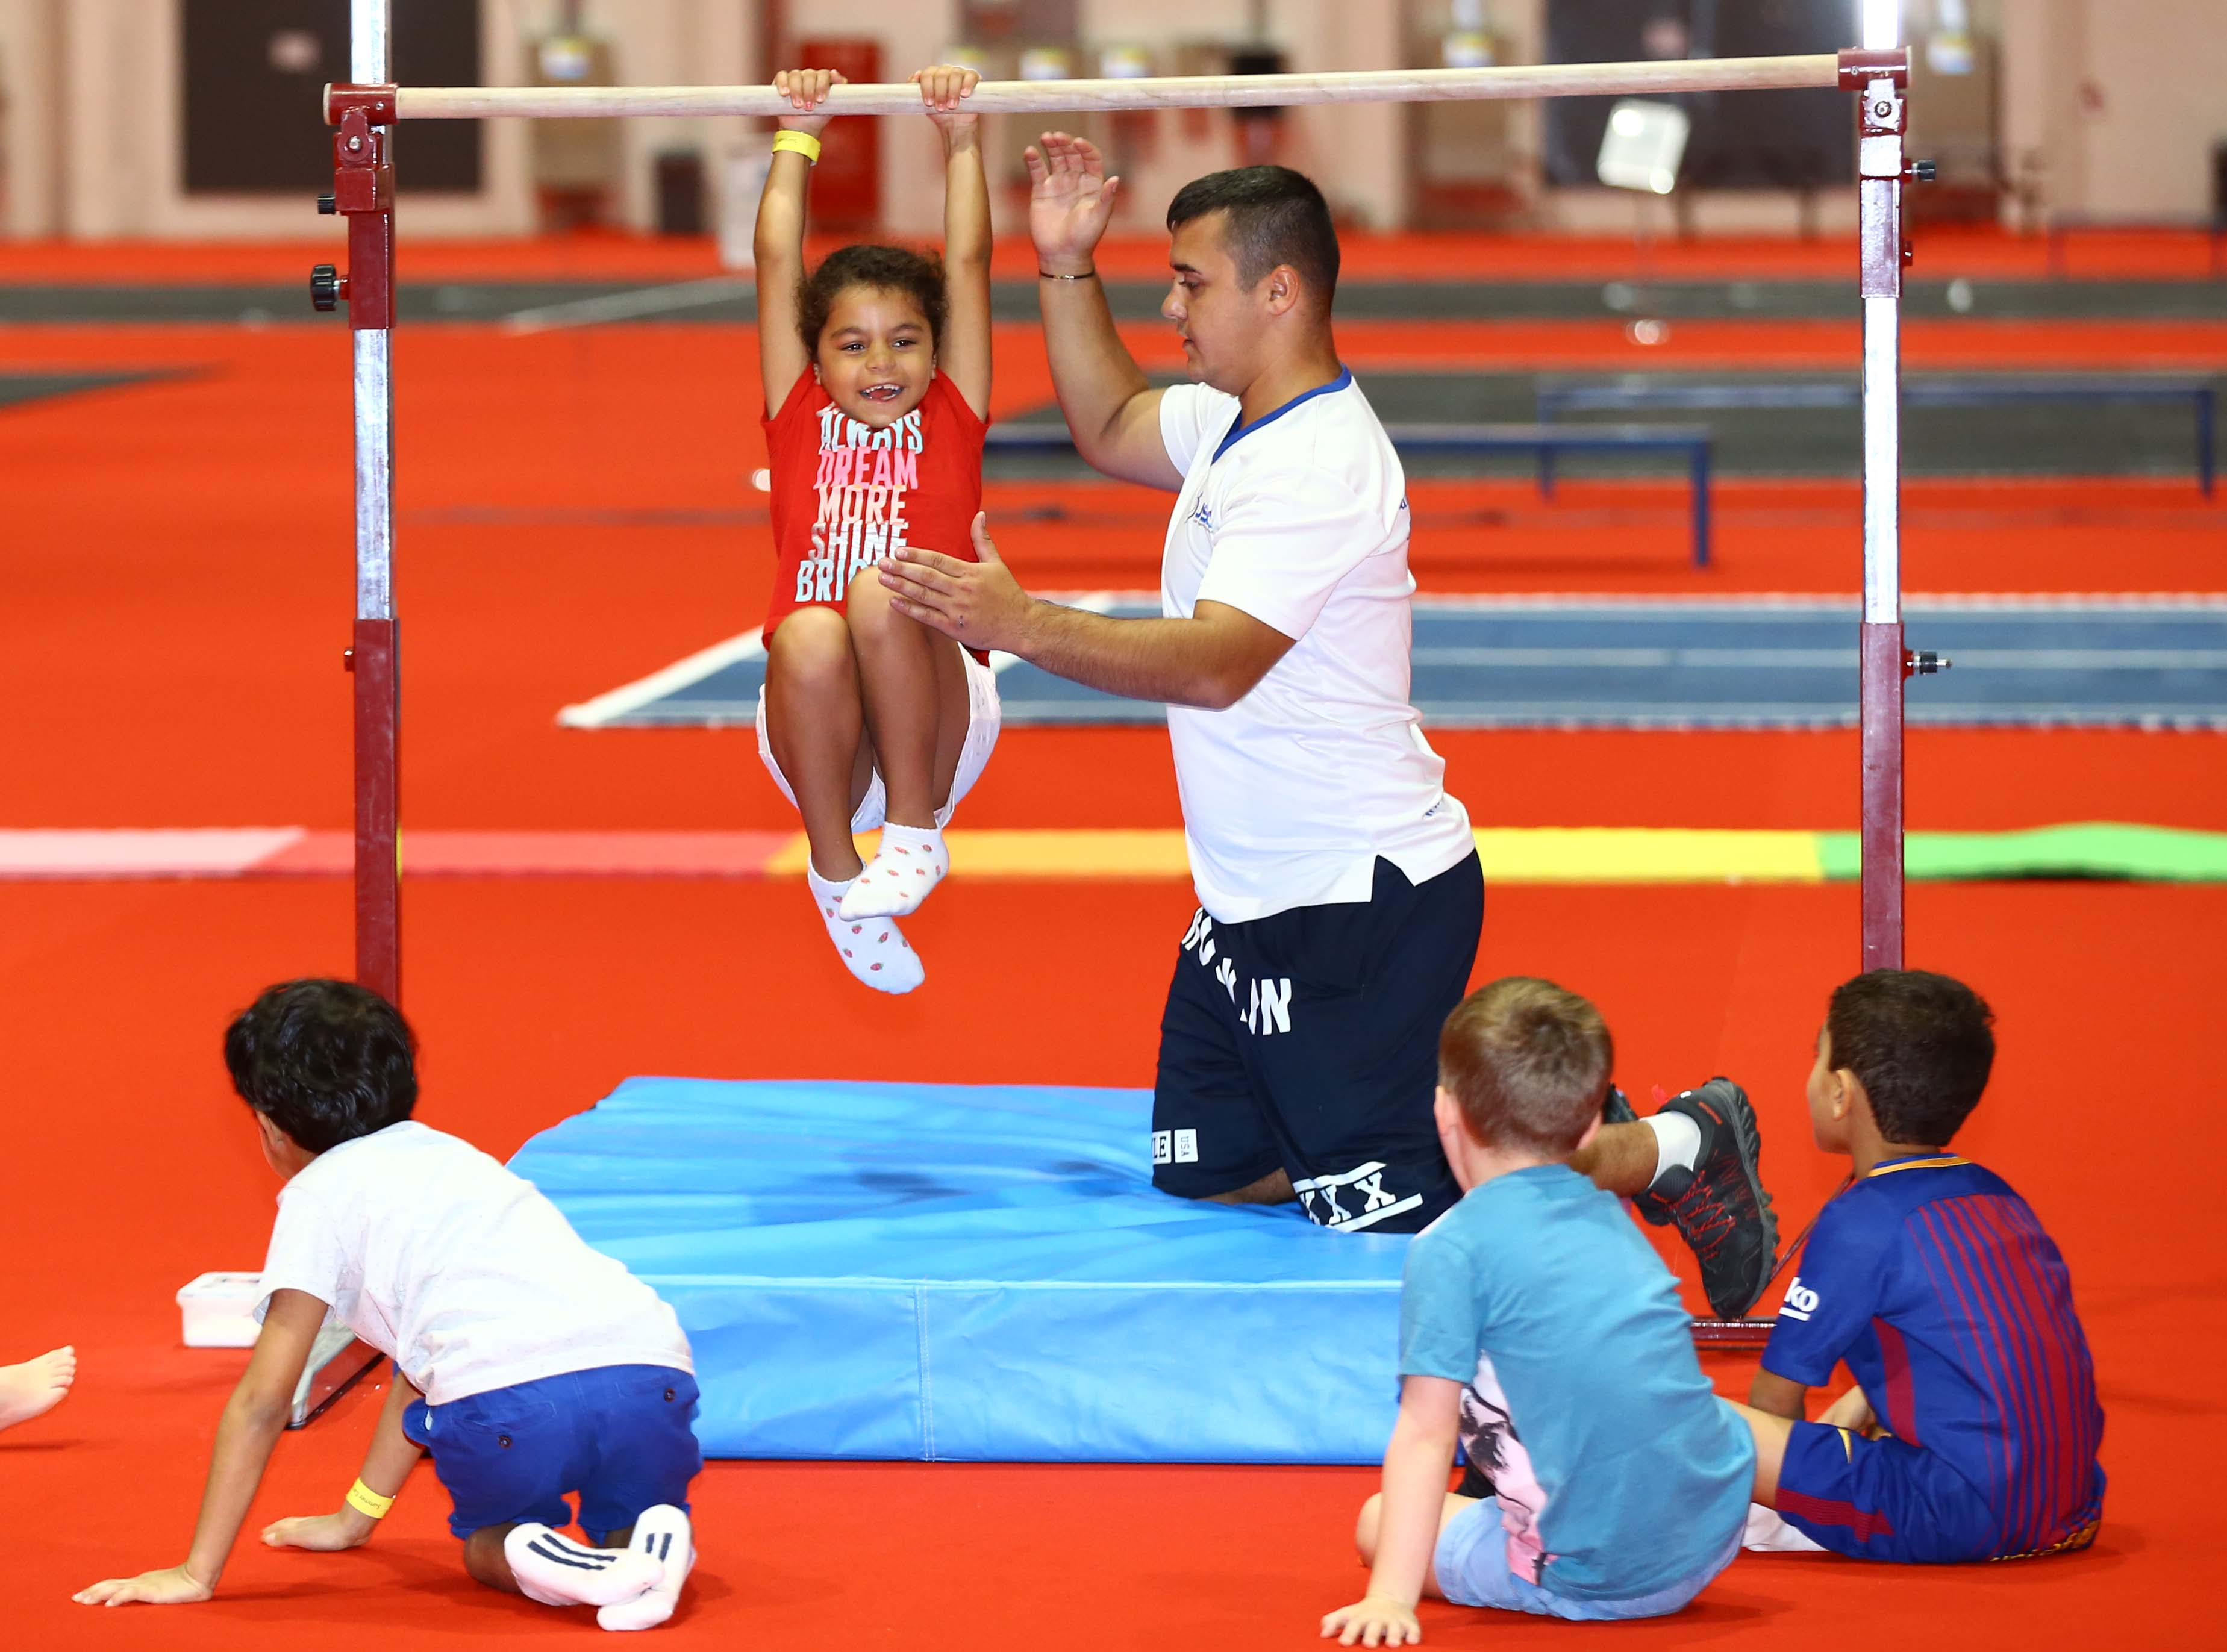 adsf 2017 starts in style | abu dhabi sports council, Powerpoint templates